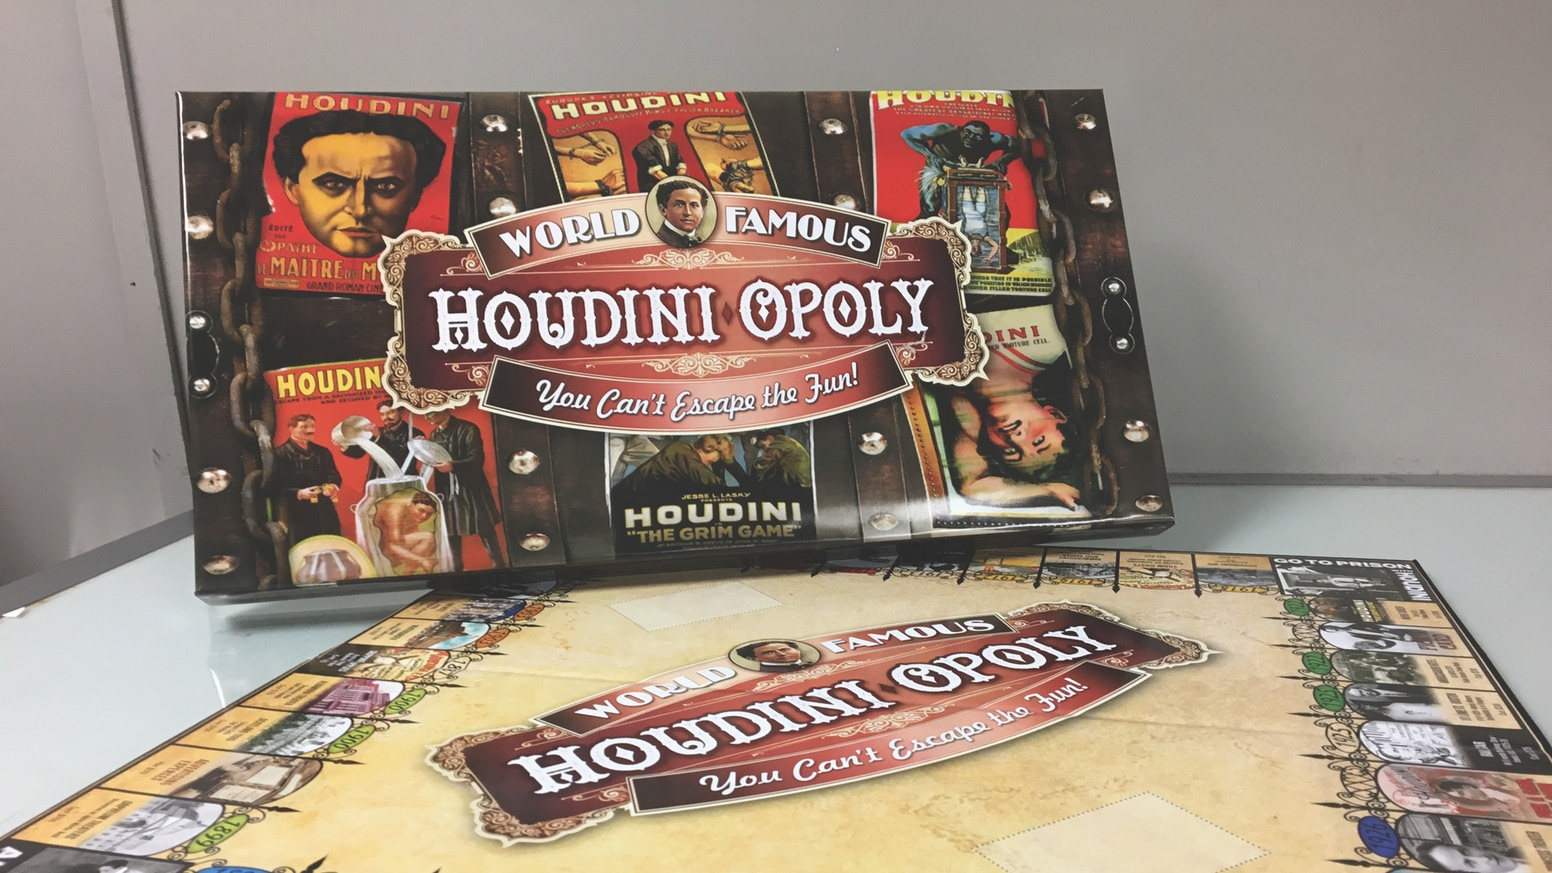 Escape from the ordinary board game. Now available after long last. Click on the graphic above to visit the Houdini-Opoly website to order your new, fun and exciting board game. You can learn more about it in our  podcast #341 from January 26, 2017 .